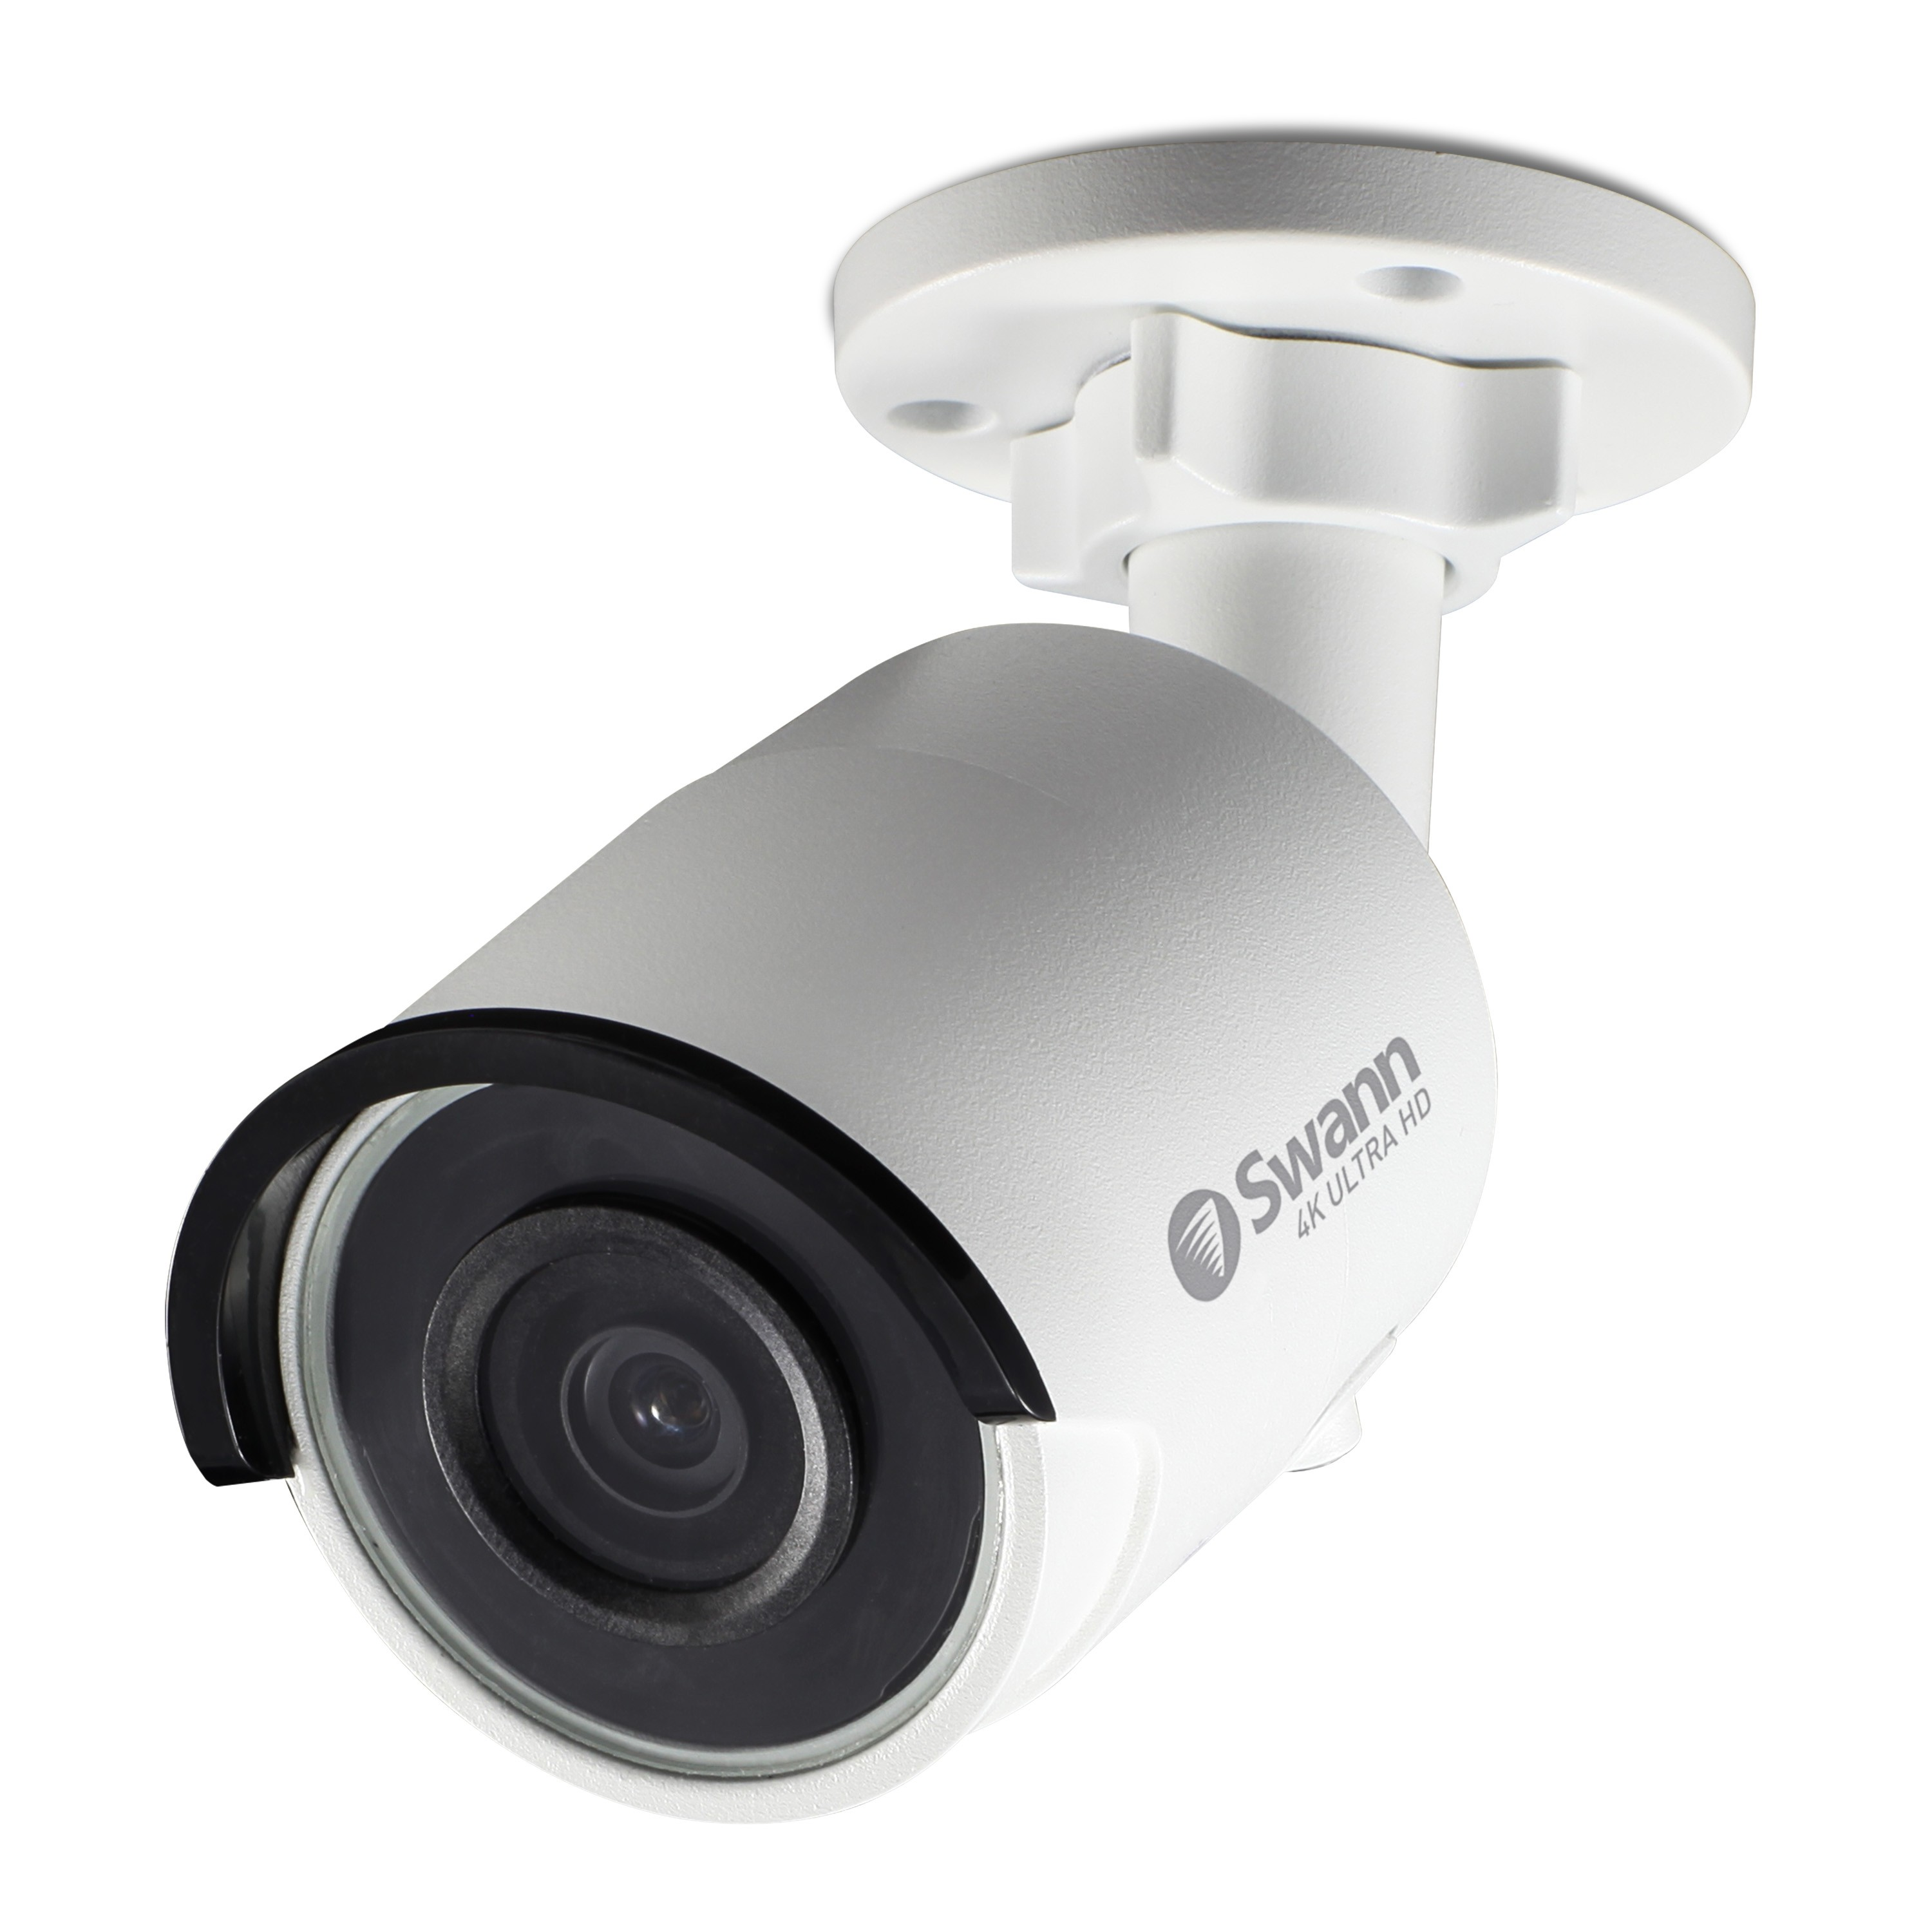 Swann 4k Ultra Hd Bullet Outdoor Security Camera With Exir